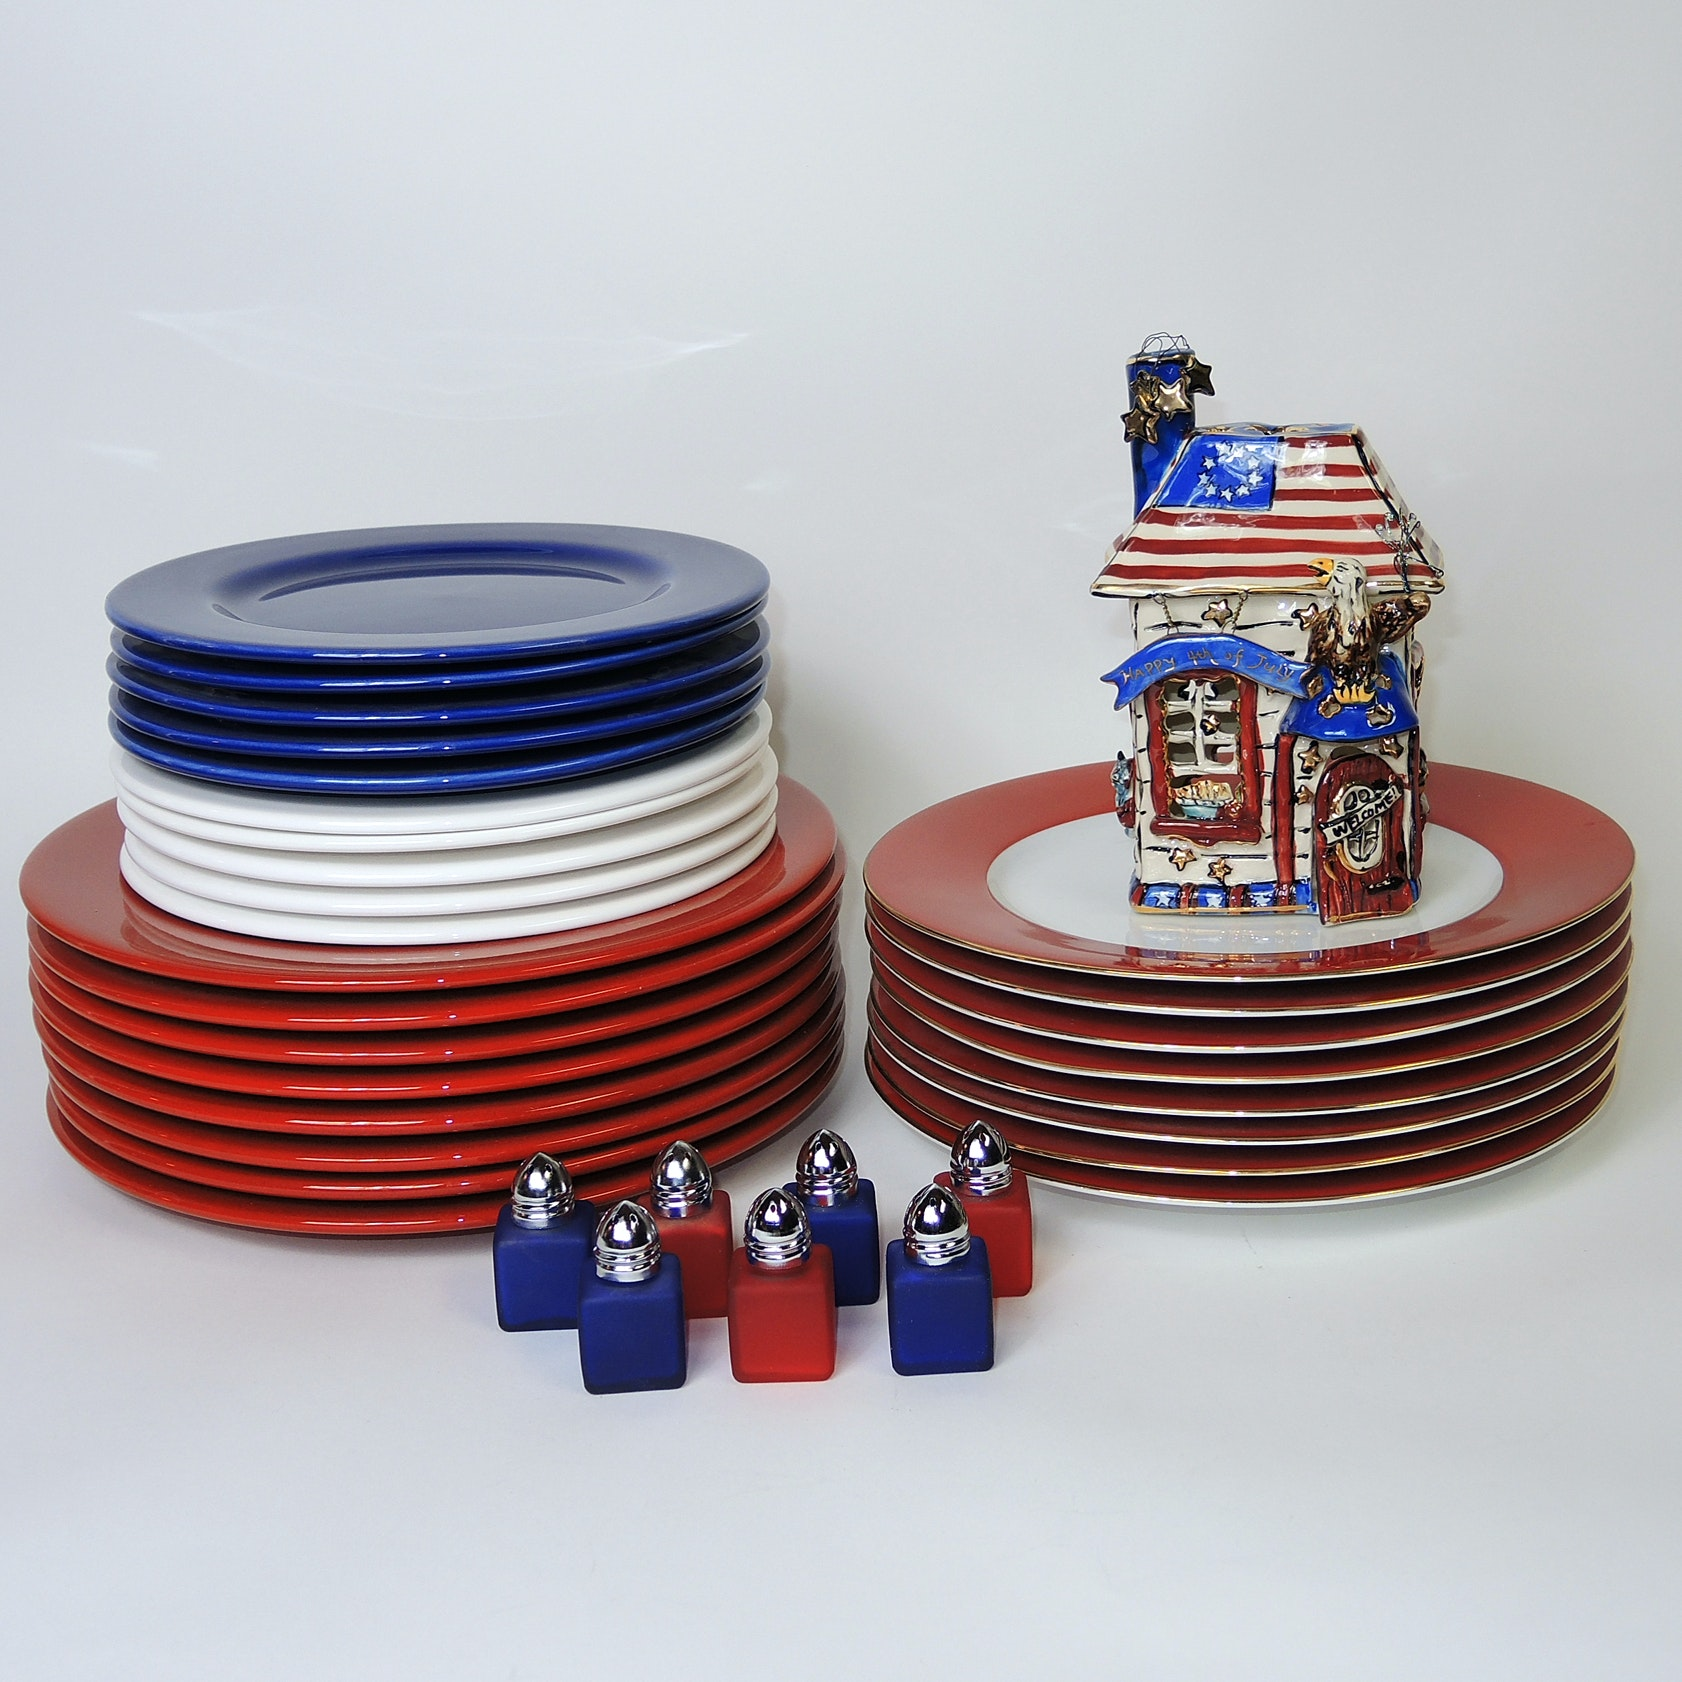 Waechtersbach Red, White and Blue Plates and 4th of July Decor